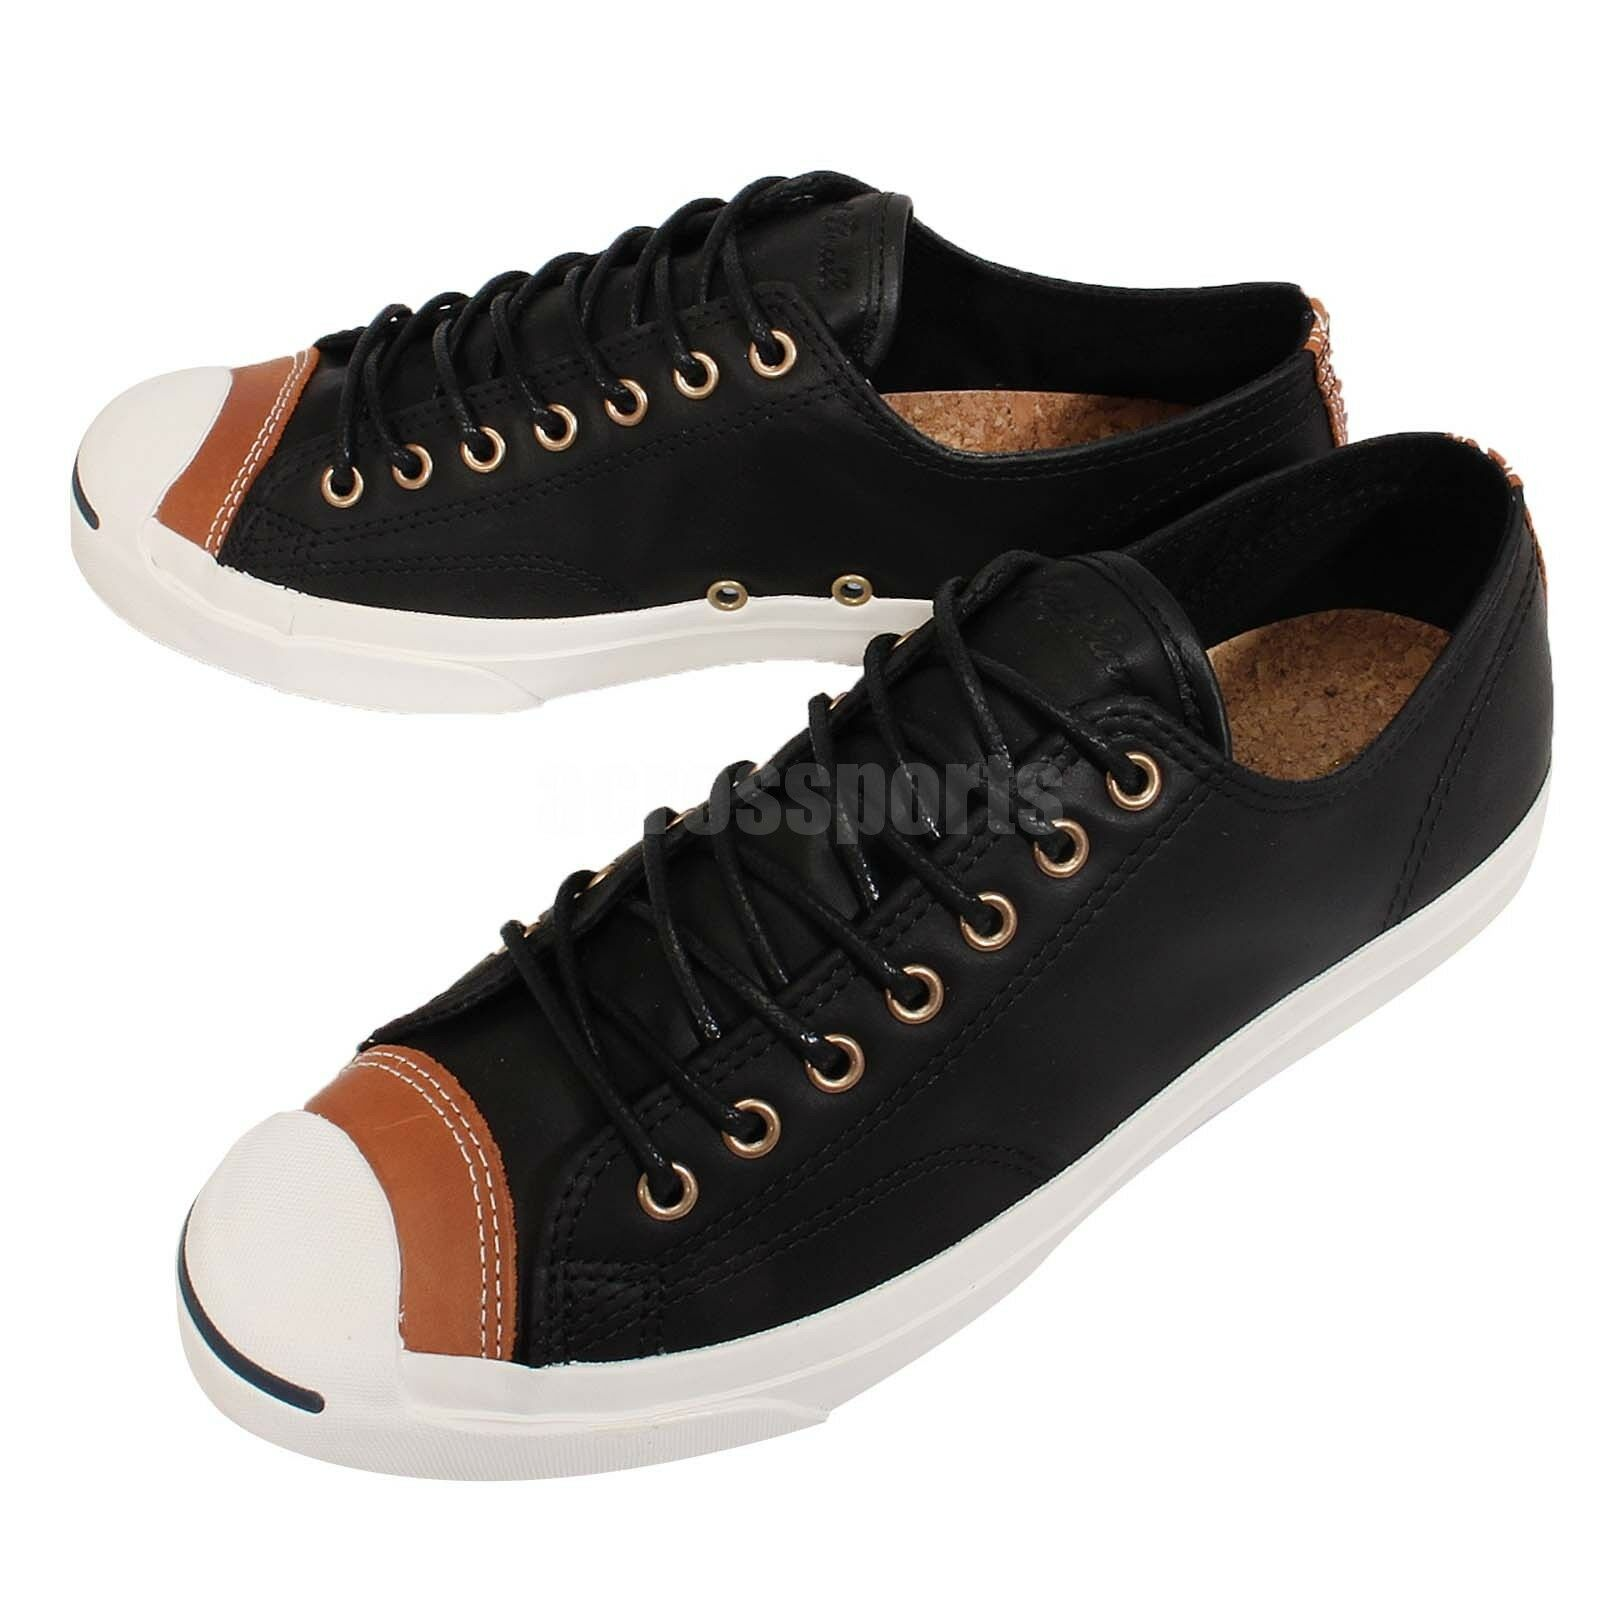 Converse Jack Purcell Jack Noir Blanc Leather Homme Femme Casual Chaussures 150293C